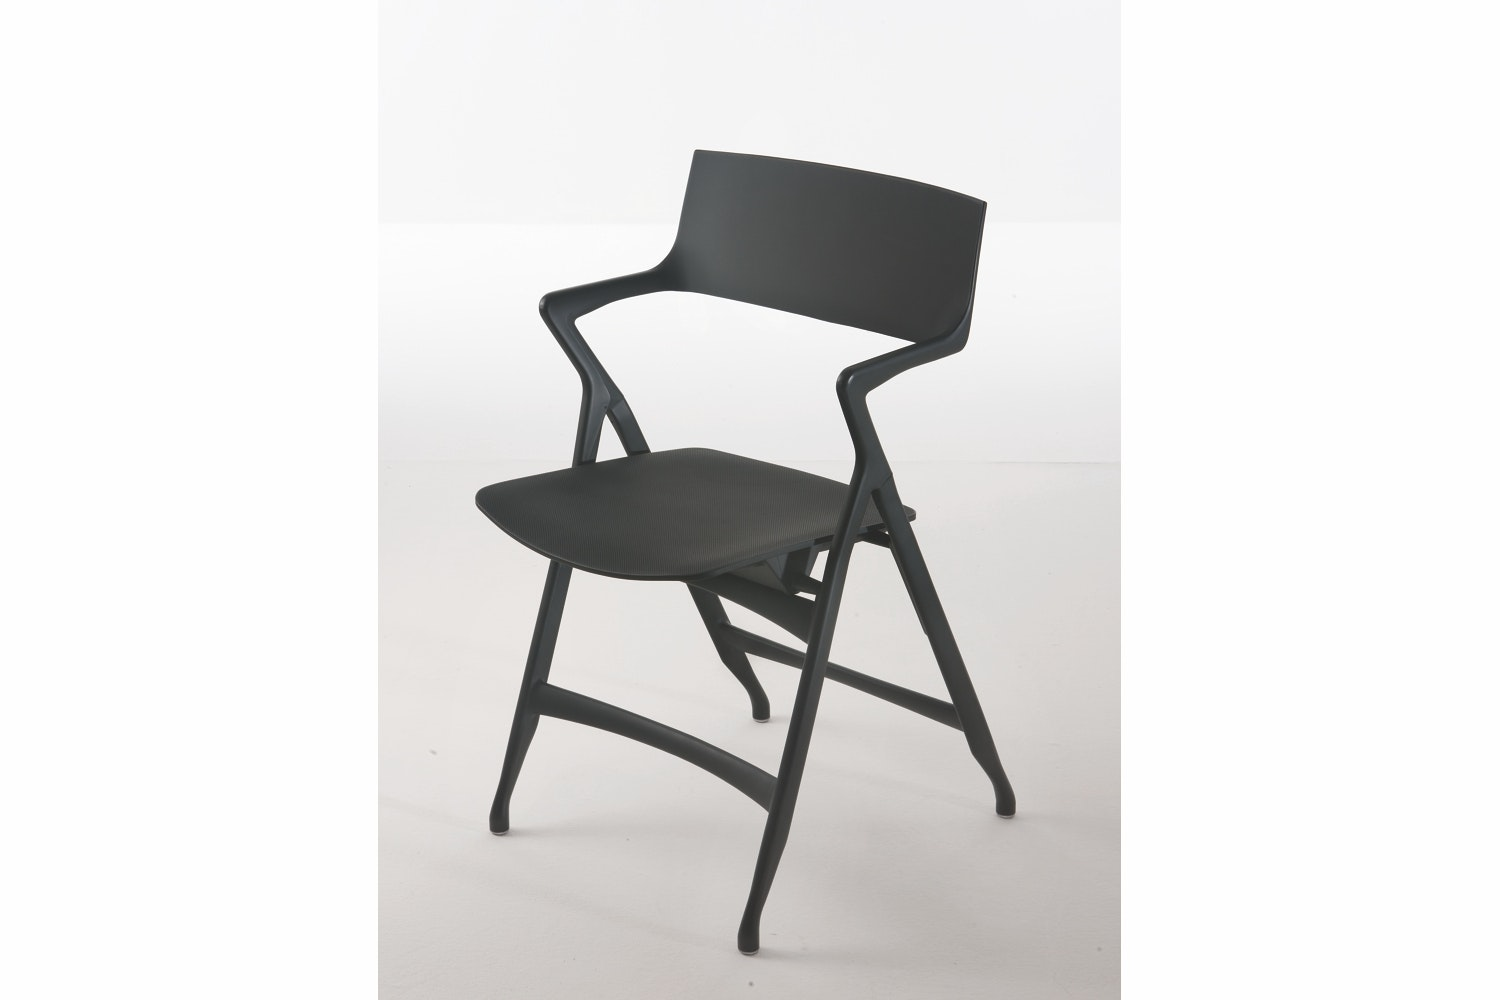 Dolly Chair with Arms by Antonio Citterio with Oliver Low for Kartell